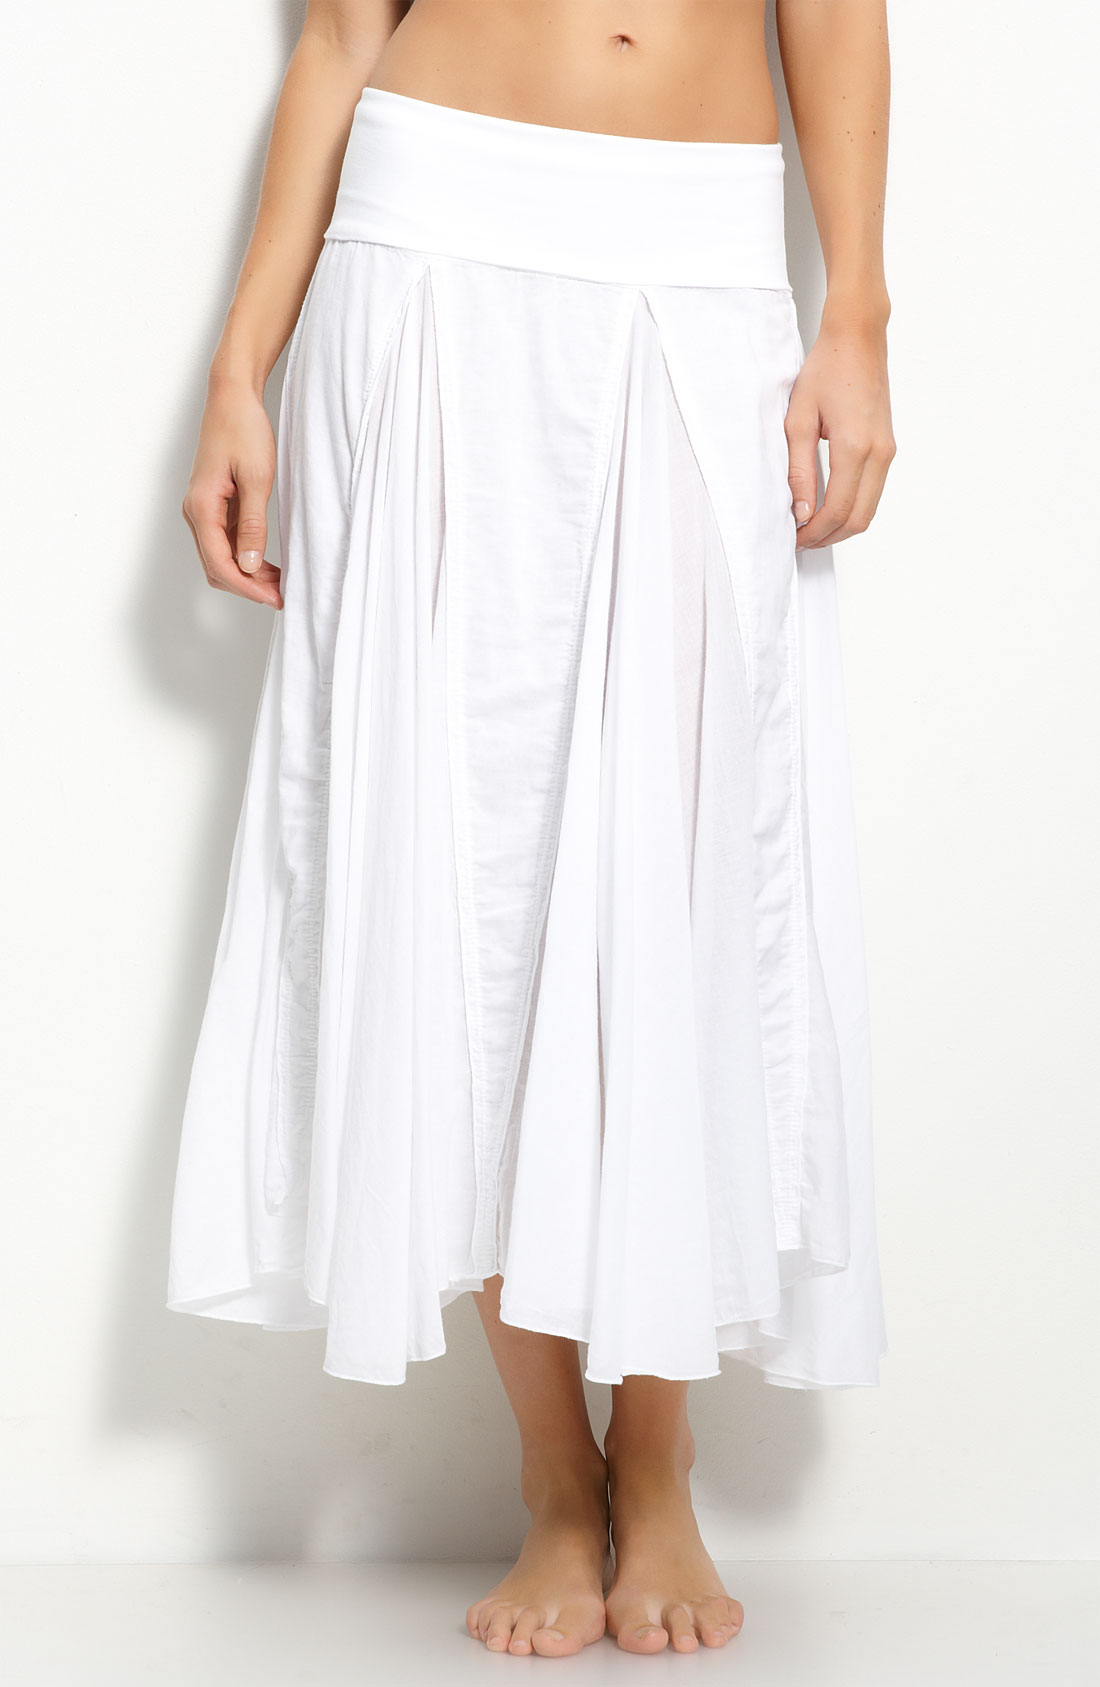 Find great deals on eBay for long white skirt. Shop with confidence.